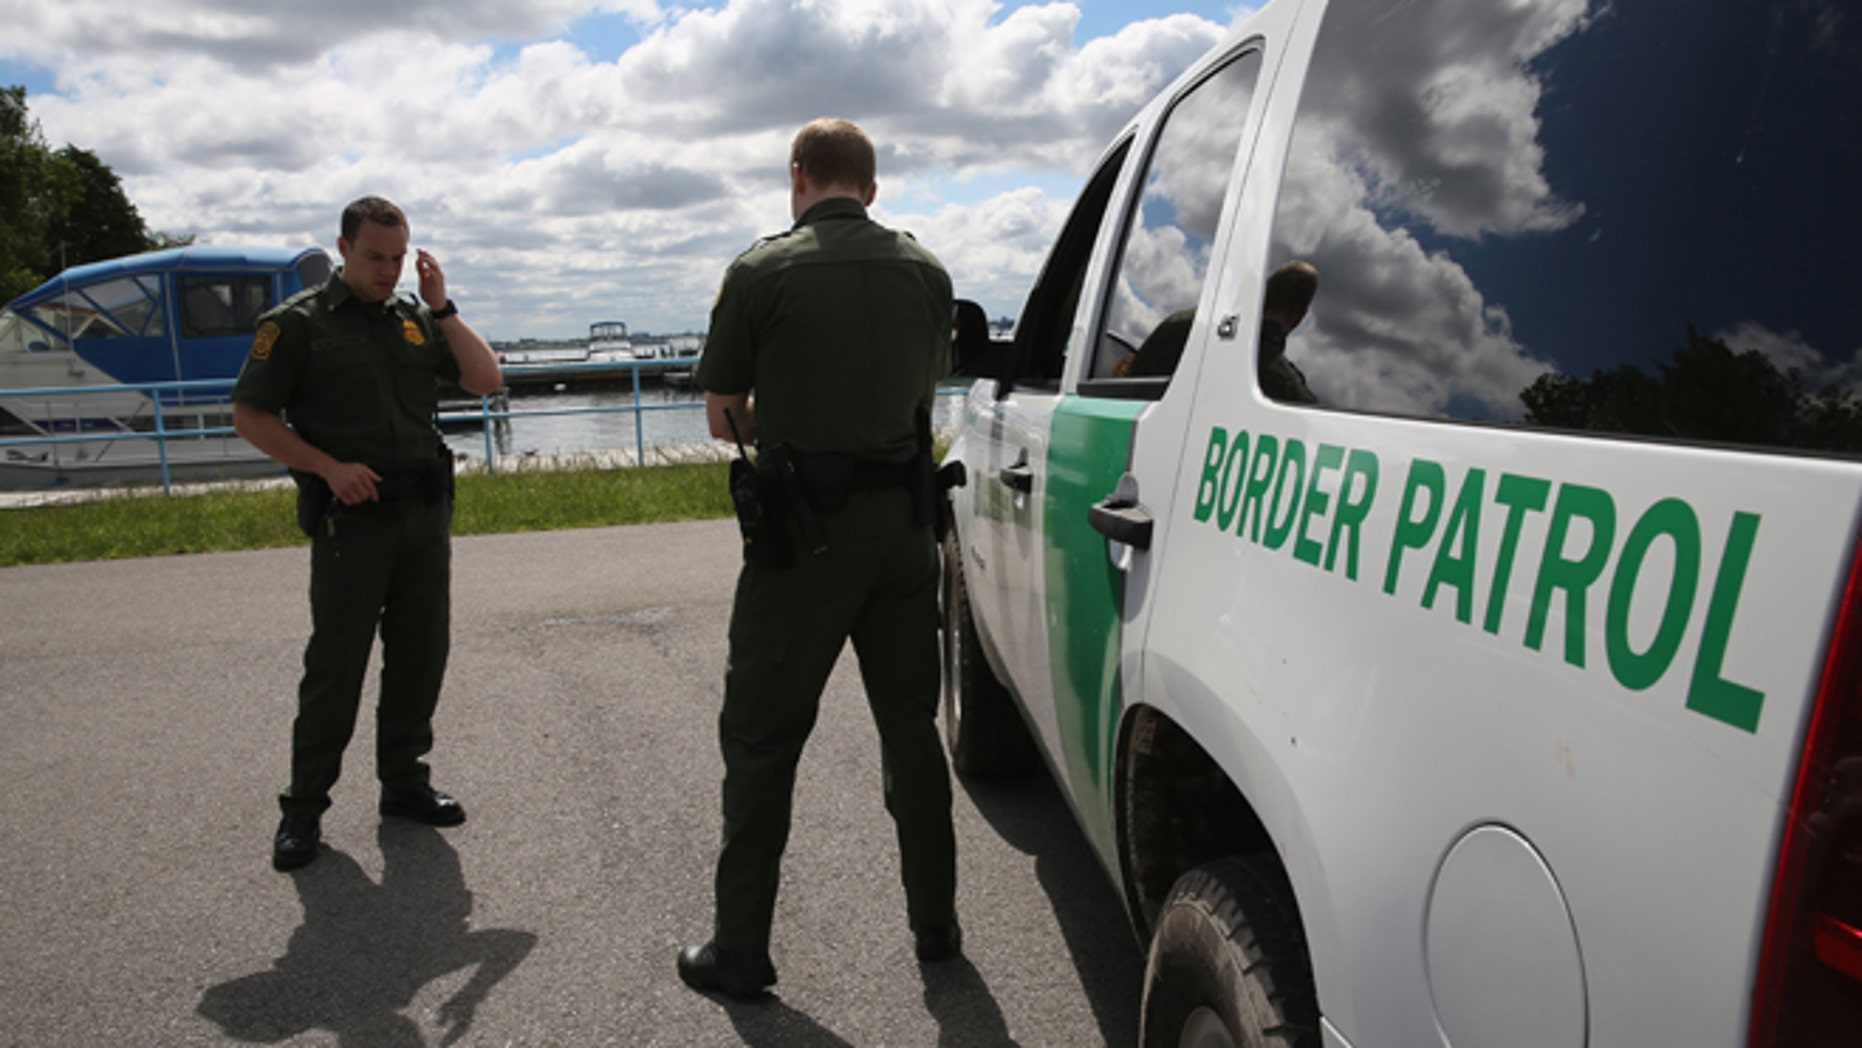 BEAVER ISLAND STATE PARK, NY - JUNE 03: U.S. Border Patrol agents talk while at a marina on the Niagara River at the U.S.-Canada border on June 3, 2013 in Beaver Island State Park, New York. U.S. Customs and Border Protection, which includes the Border Patrol, monitors the 5,525 mile long border, including Alaska, forming the longest international border between two countries in the world.  (Photo by John Moore/Getty Images)